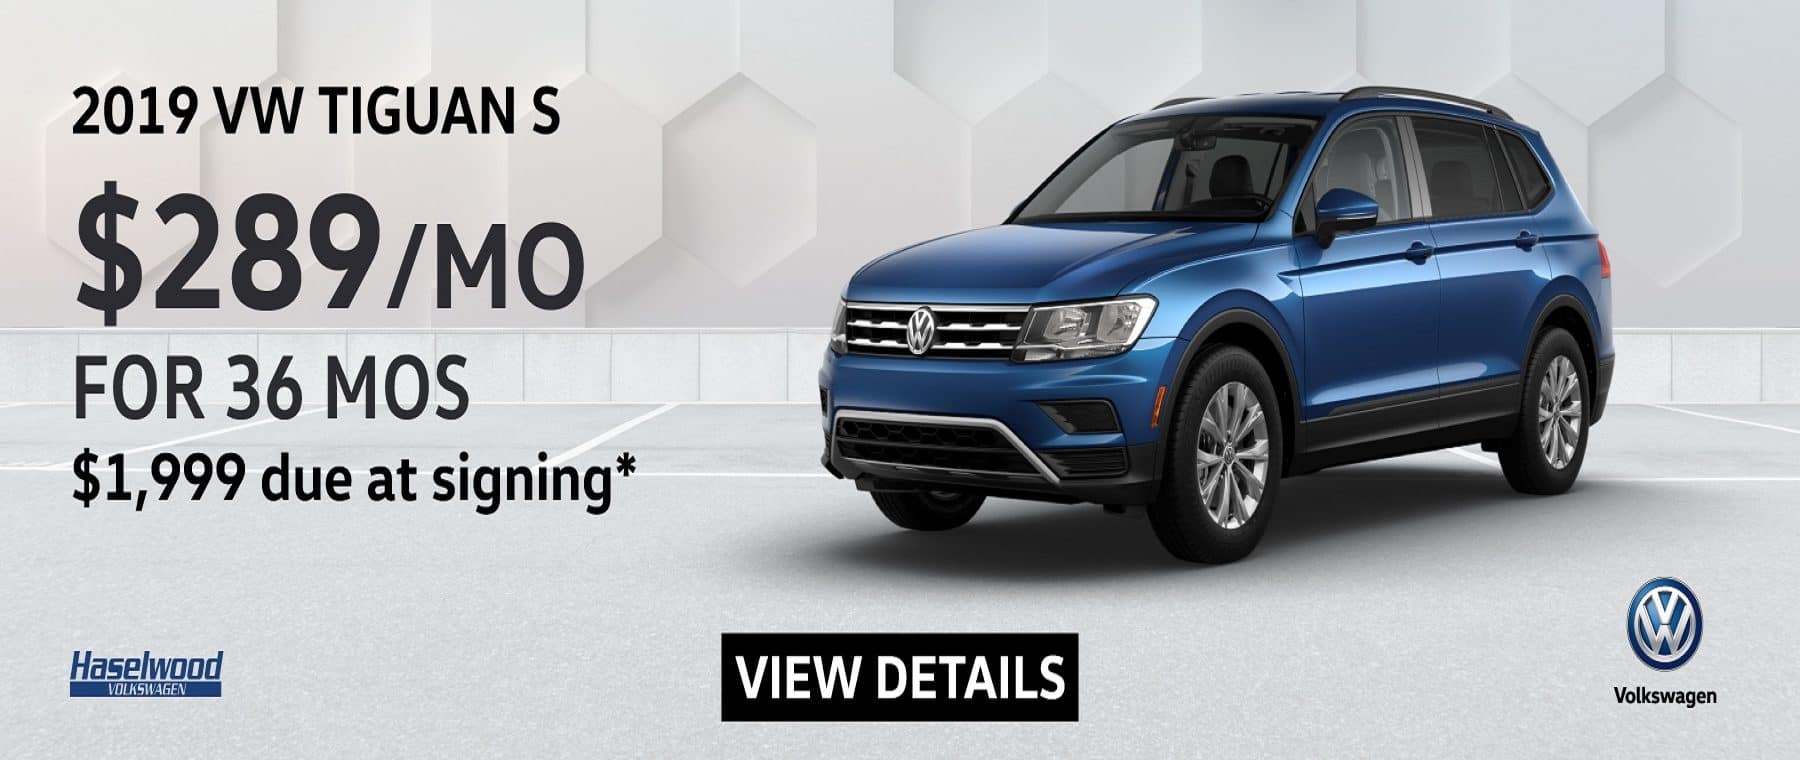 2019 Volkswagen Tiguan S $289/mo. for 36 months $1,999 Due at Signing    * Offer valid on 2019 Volkswagen Tiguan. $289 per mo. for 36 months. Lease with $1,999 due at signing; includes a $595 acquisition fee, lease through Volkswagen Credit. No security deposit required. Valid on VIN: 3VV0B7AXXKM180233.For highly qualified customers on approved top tier credit through Volkswagen Credit. Lessee responsible for maintenance, excessive wear/tear and 20¢/mi over 10K mi/yr. Excludes state and local taxes, tags, registration and title, insurance and dealer charges. Subject to credit approval. 36 monthly payments required. Monthly lease payment based on MSRP of $26,860 and destination charges less a suggested dealer contribution resulting in a Gross capitalized cost of $25,927. Cap cost reduction: $933. A negotiable dealer documentary service fee of up to $150 may be added to the sale price or capitalized cost. See dealer for complete details and restrictions. 6 years/72,000 miles (whichever occurs first). New Vehicle Limited Warranty on MY2018 and newer VW vehicles, excluding e-Golf. See owner's literature or dealer for warranty exclusions and limitations. Exp. 9/30/2019.